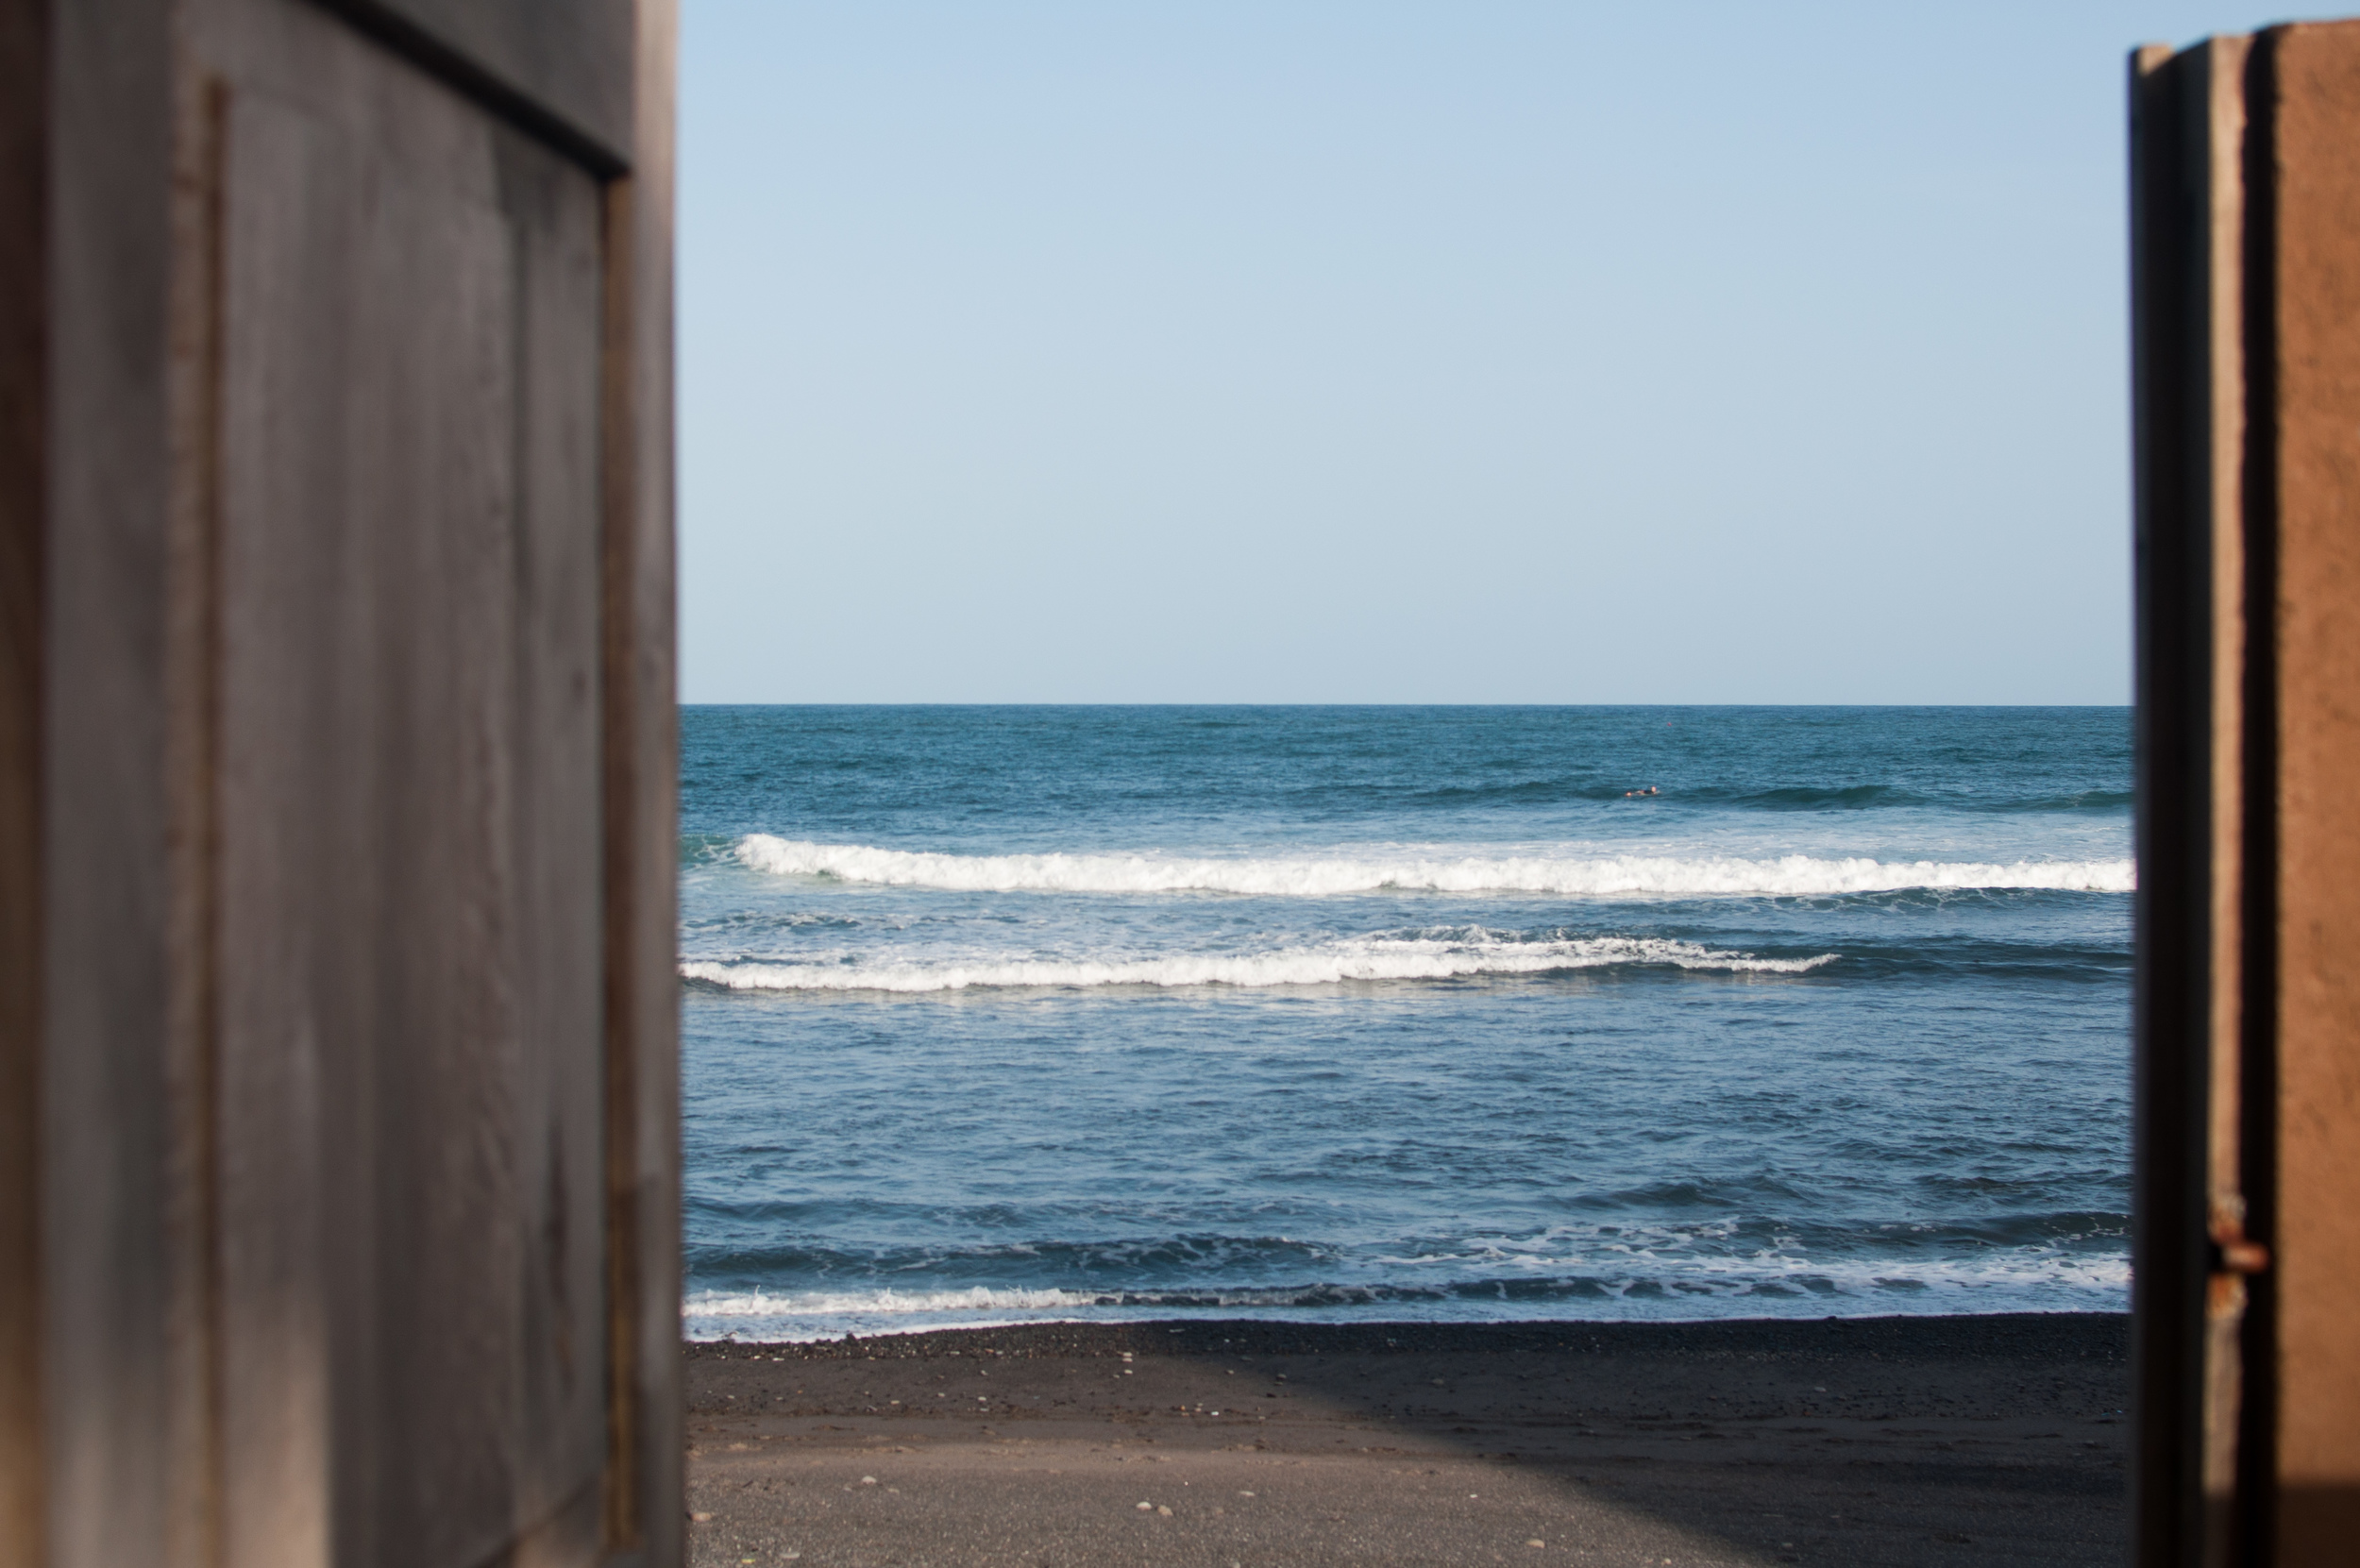 THE GATE TO THE SURF